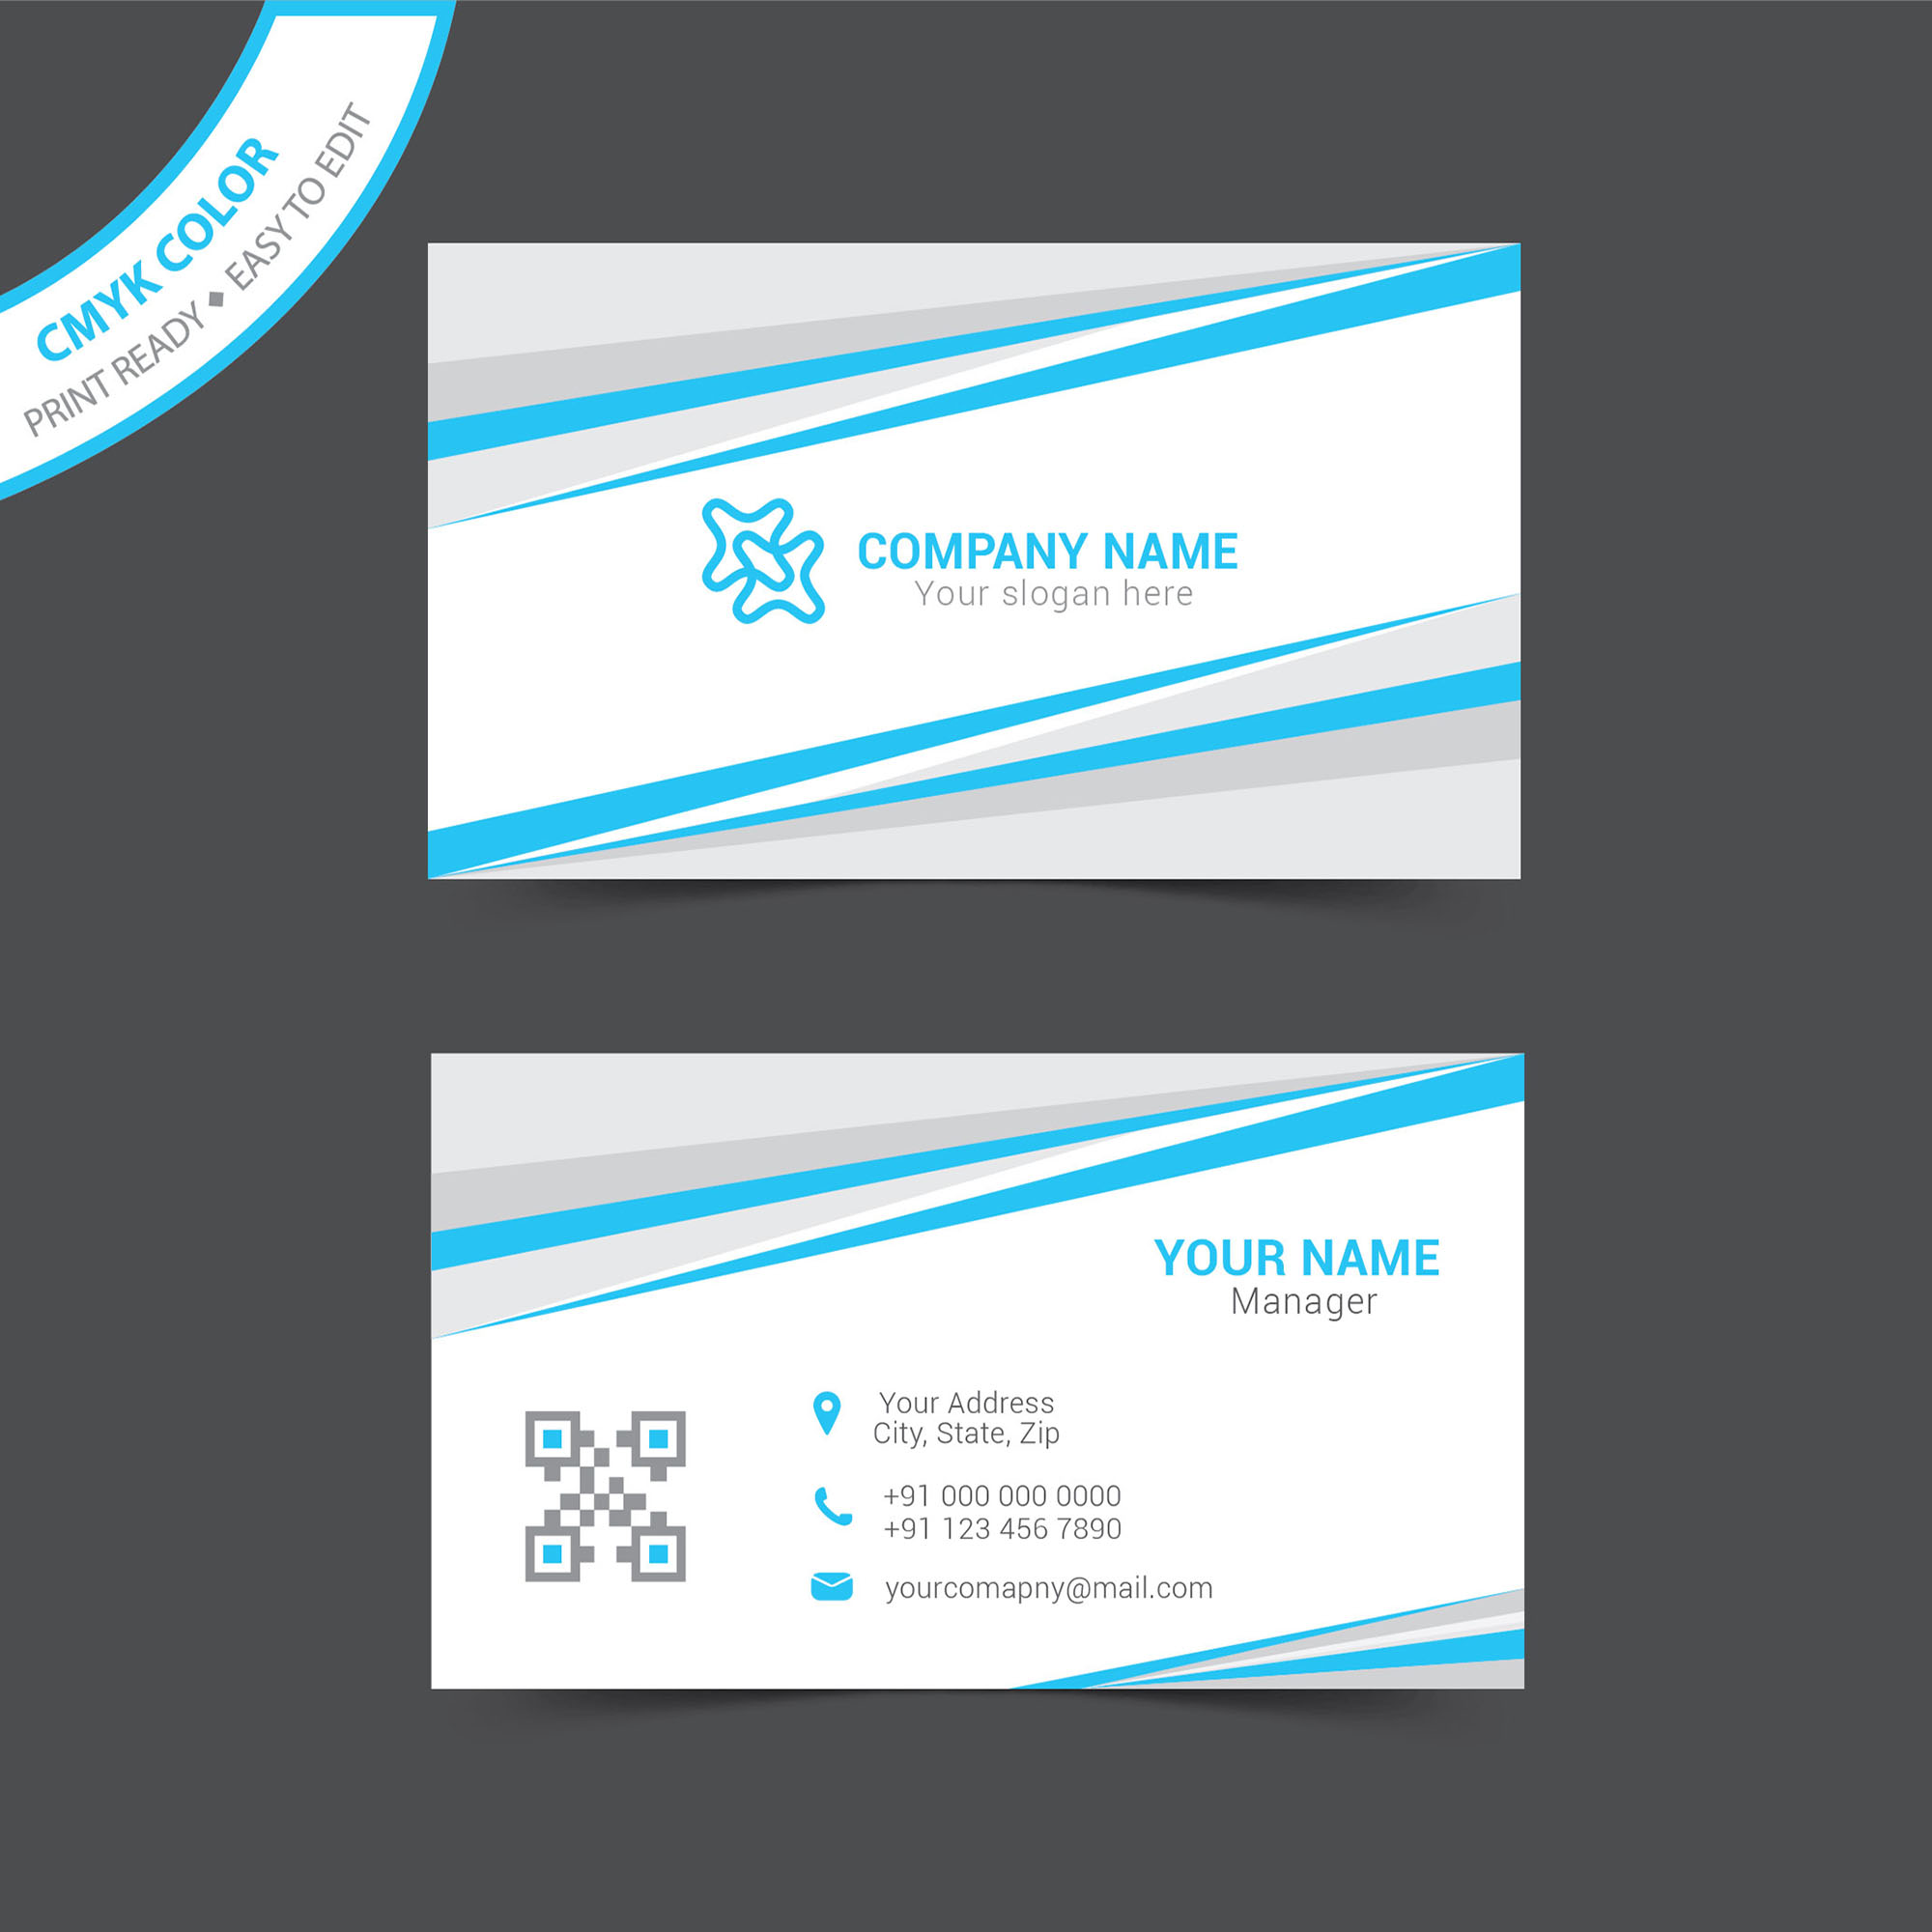 Simple business card template free download wisxi business card business cards business card design business card template design templates flashek